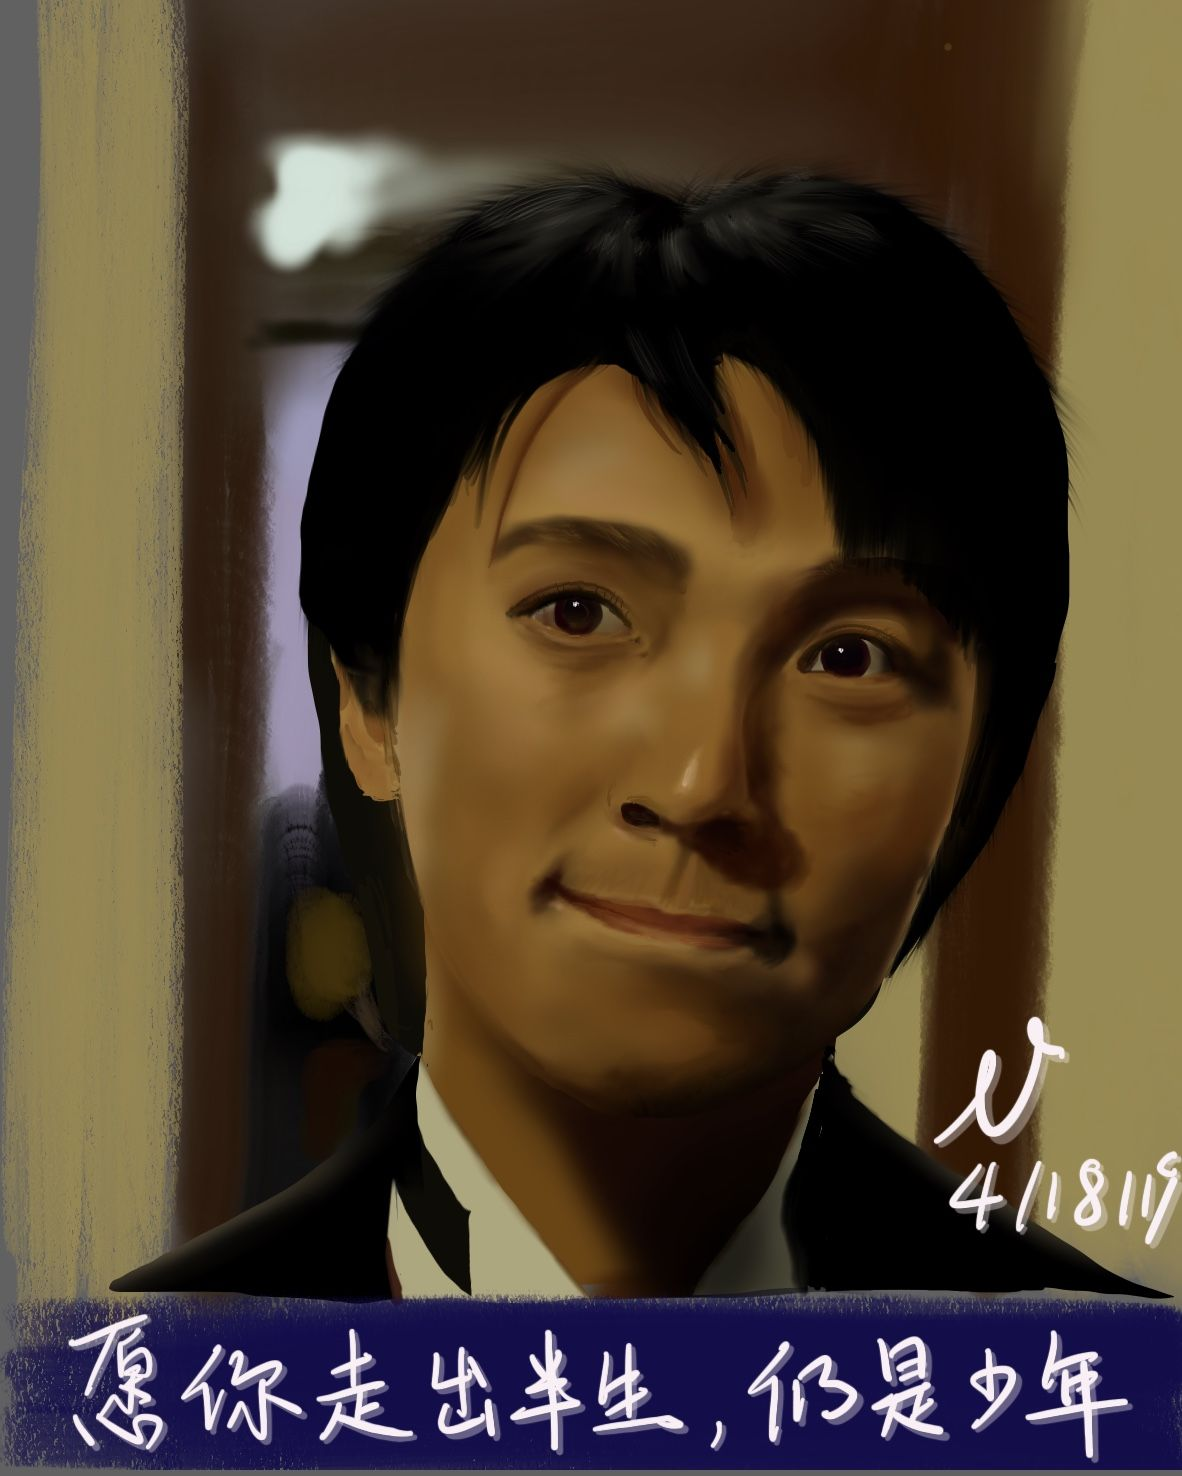 My Portrait Study Of Stephen Chow A Legendary Chinese Actor That